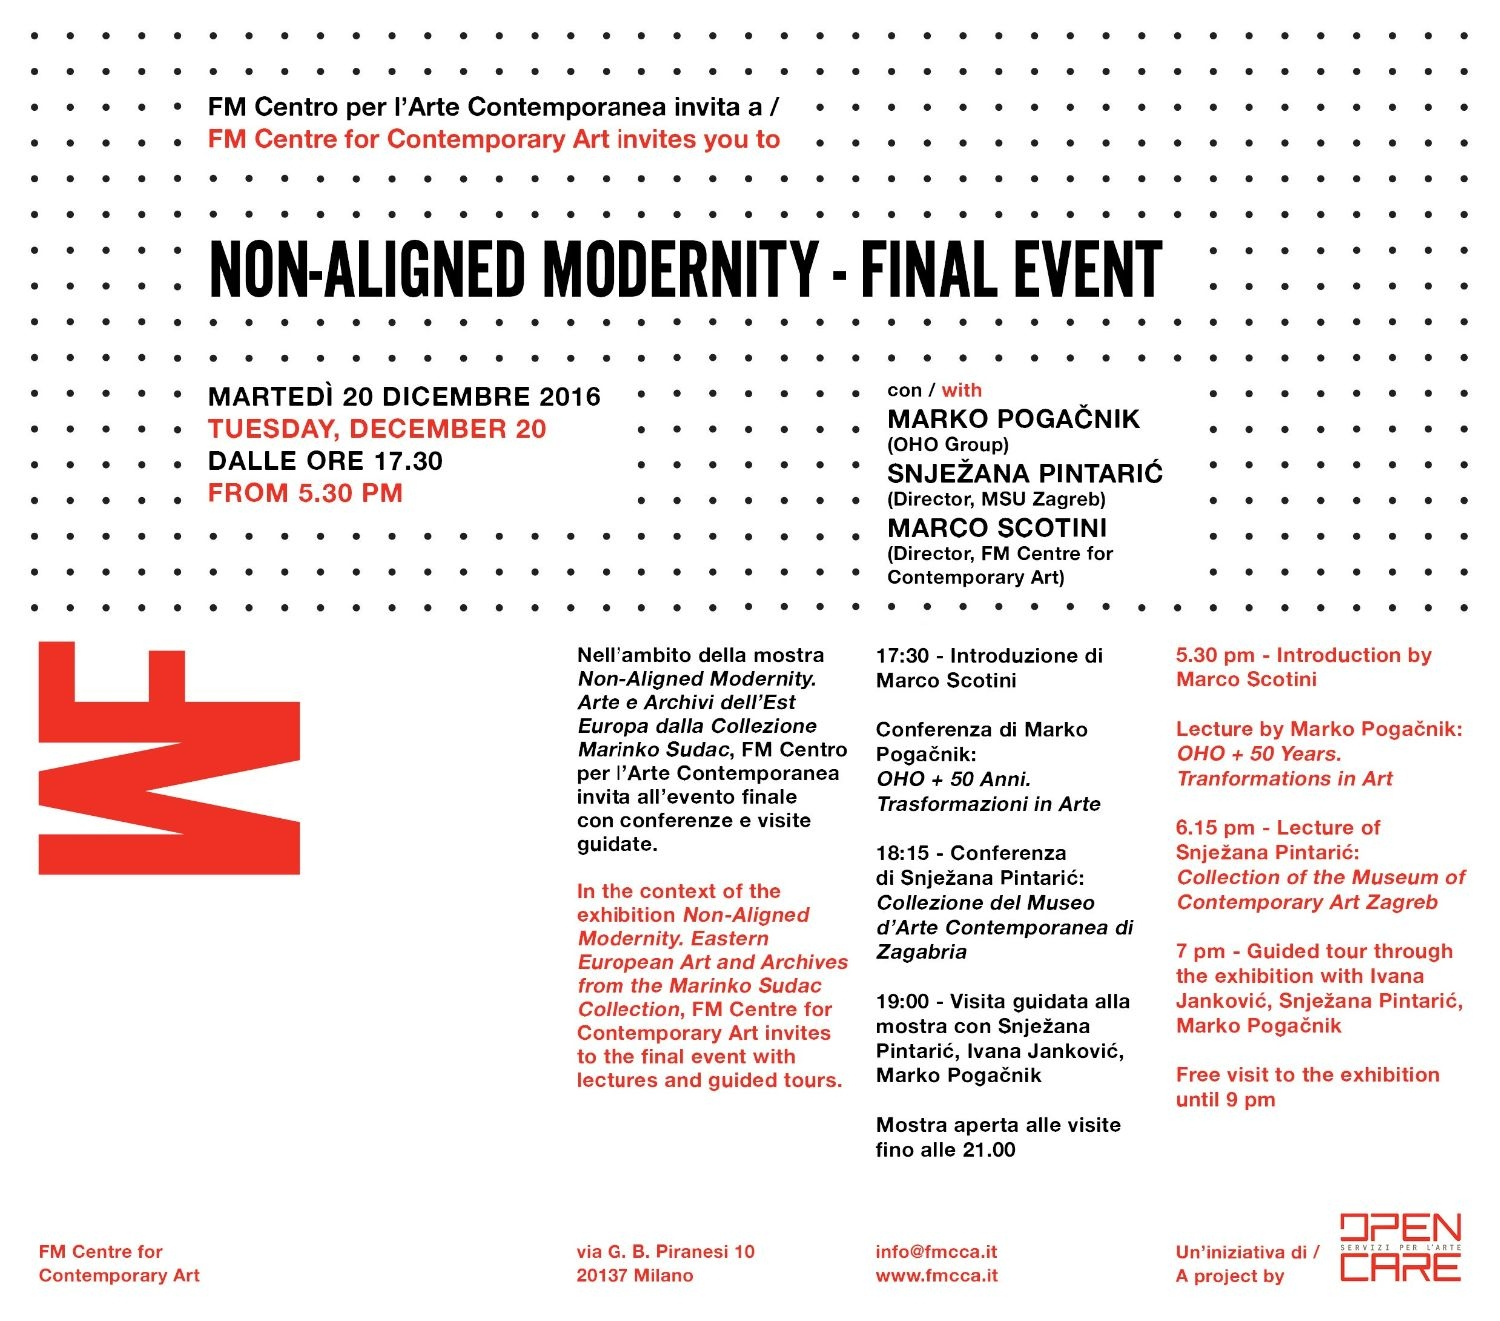 Non-Aligned Modernity - Final Event